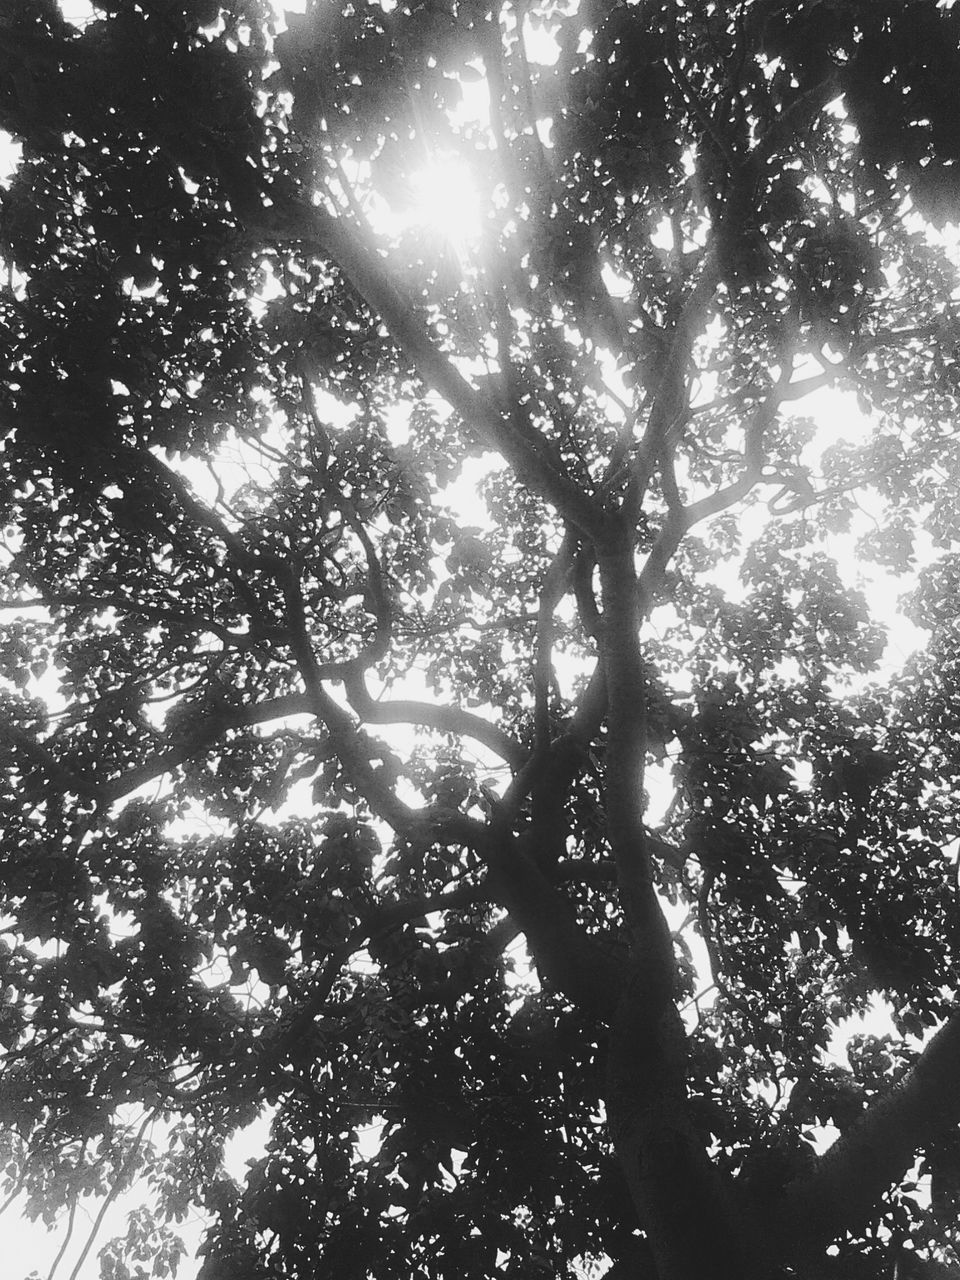 tree, low angle view, sunlight, nature, sunbeam, day, no people, growth, branch, outdoors, tranquility, forest, beauty in nature, scenics, backgrounds, tree trunk, sky